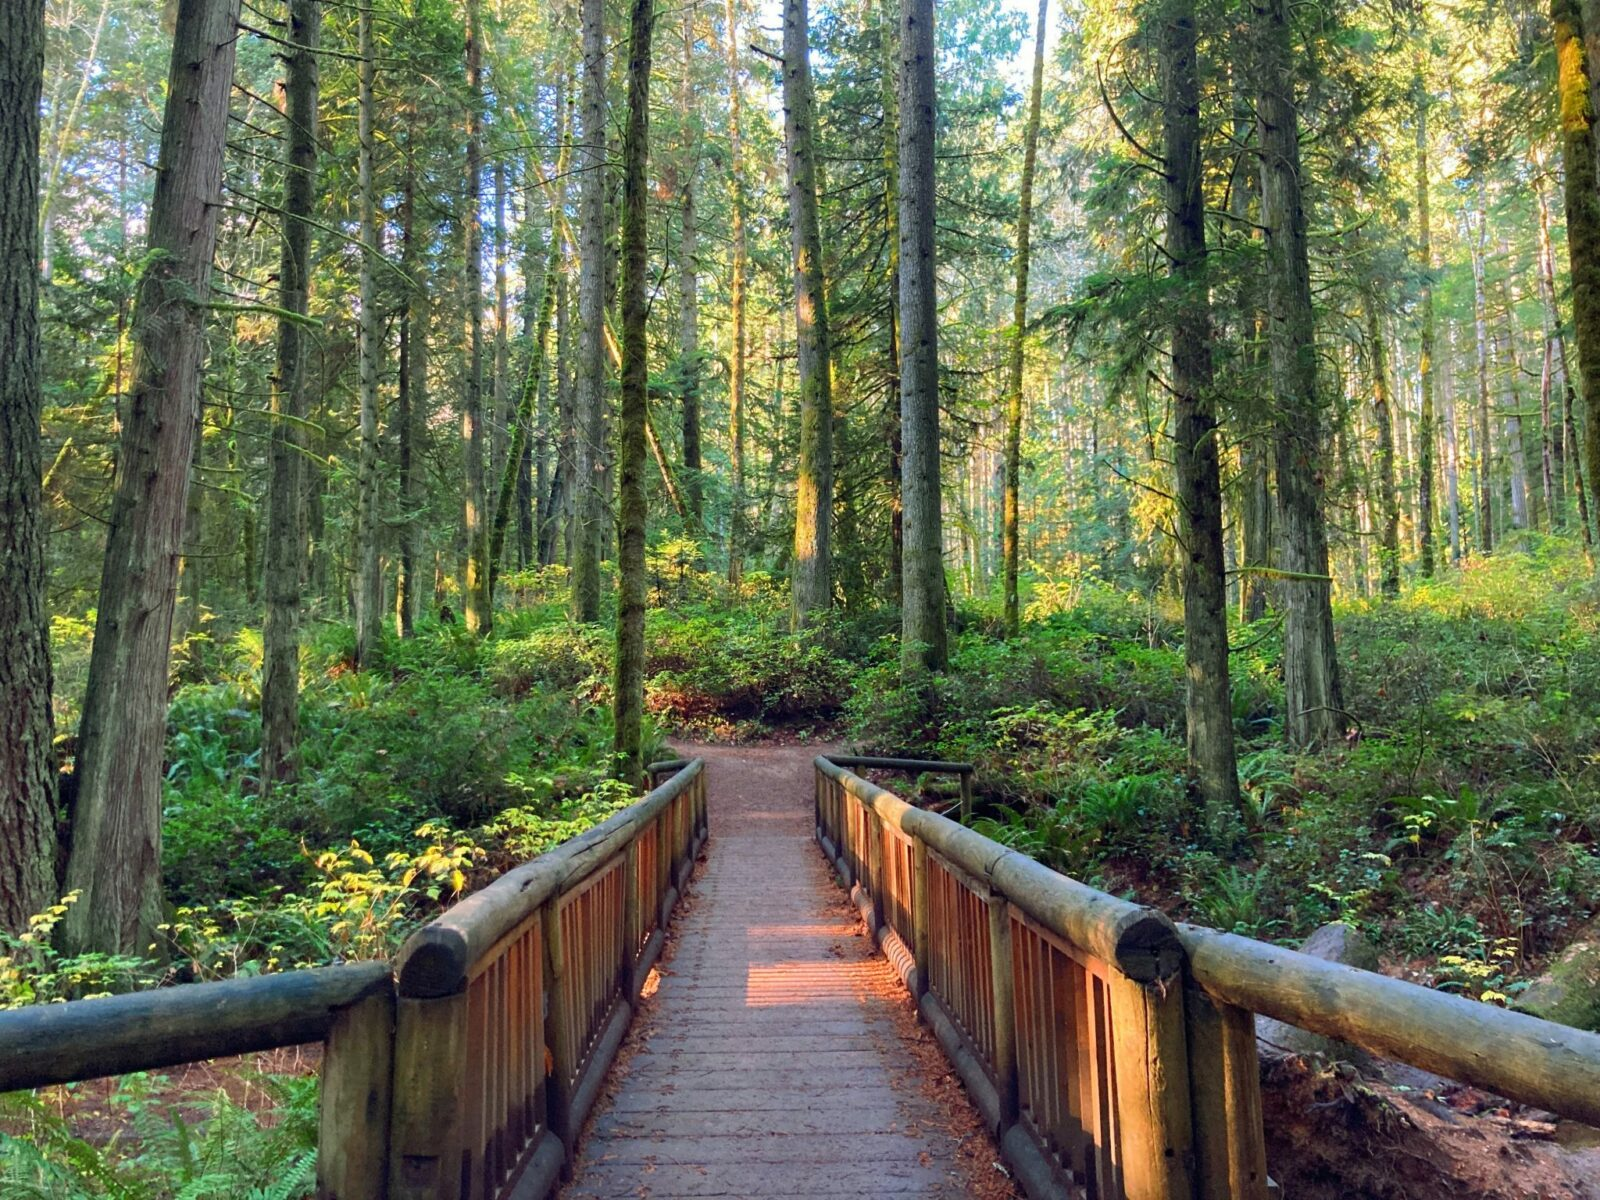 Hiking is one of the best things to do on Bainbridge Island. In Grand Forest, there are second growth evergreen trees, undergrowth and a narrow log pedestrian bridge